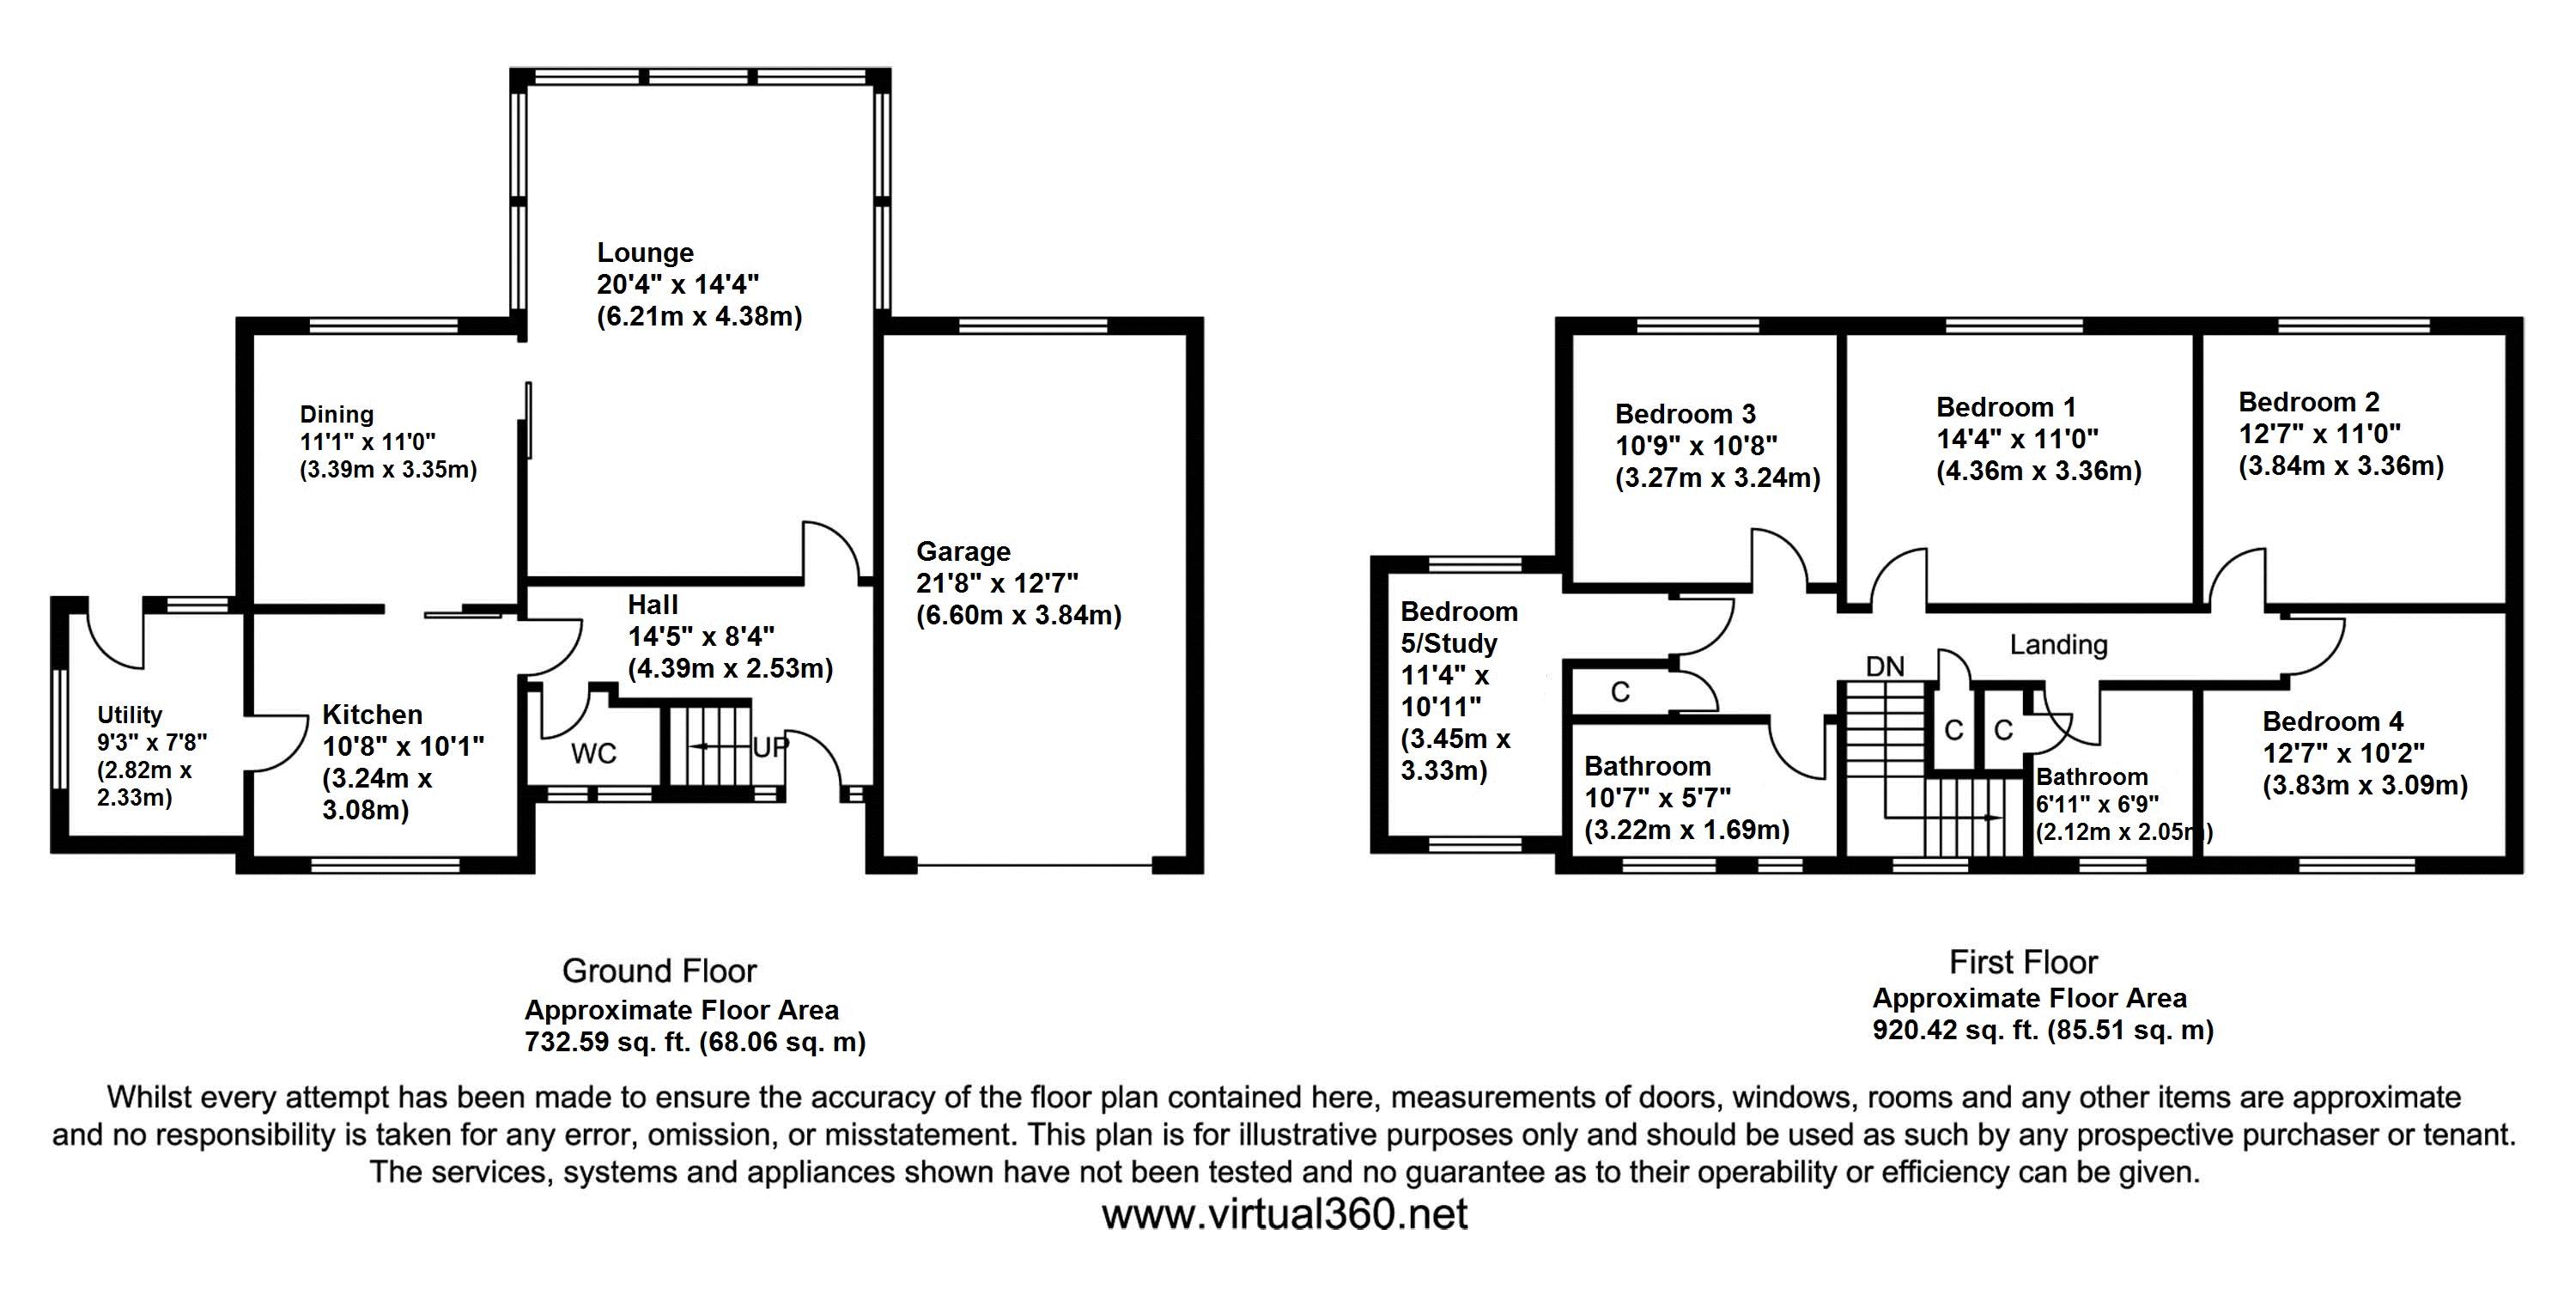 Yew Tree Avenue, Bradford, BD8 floor plan